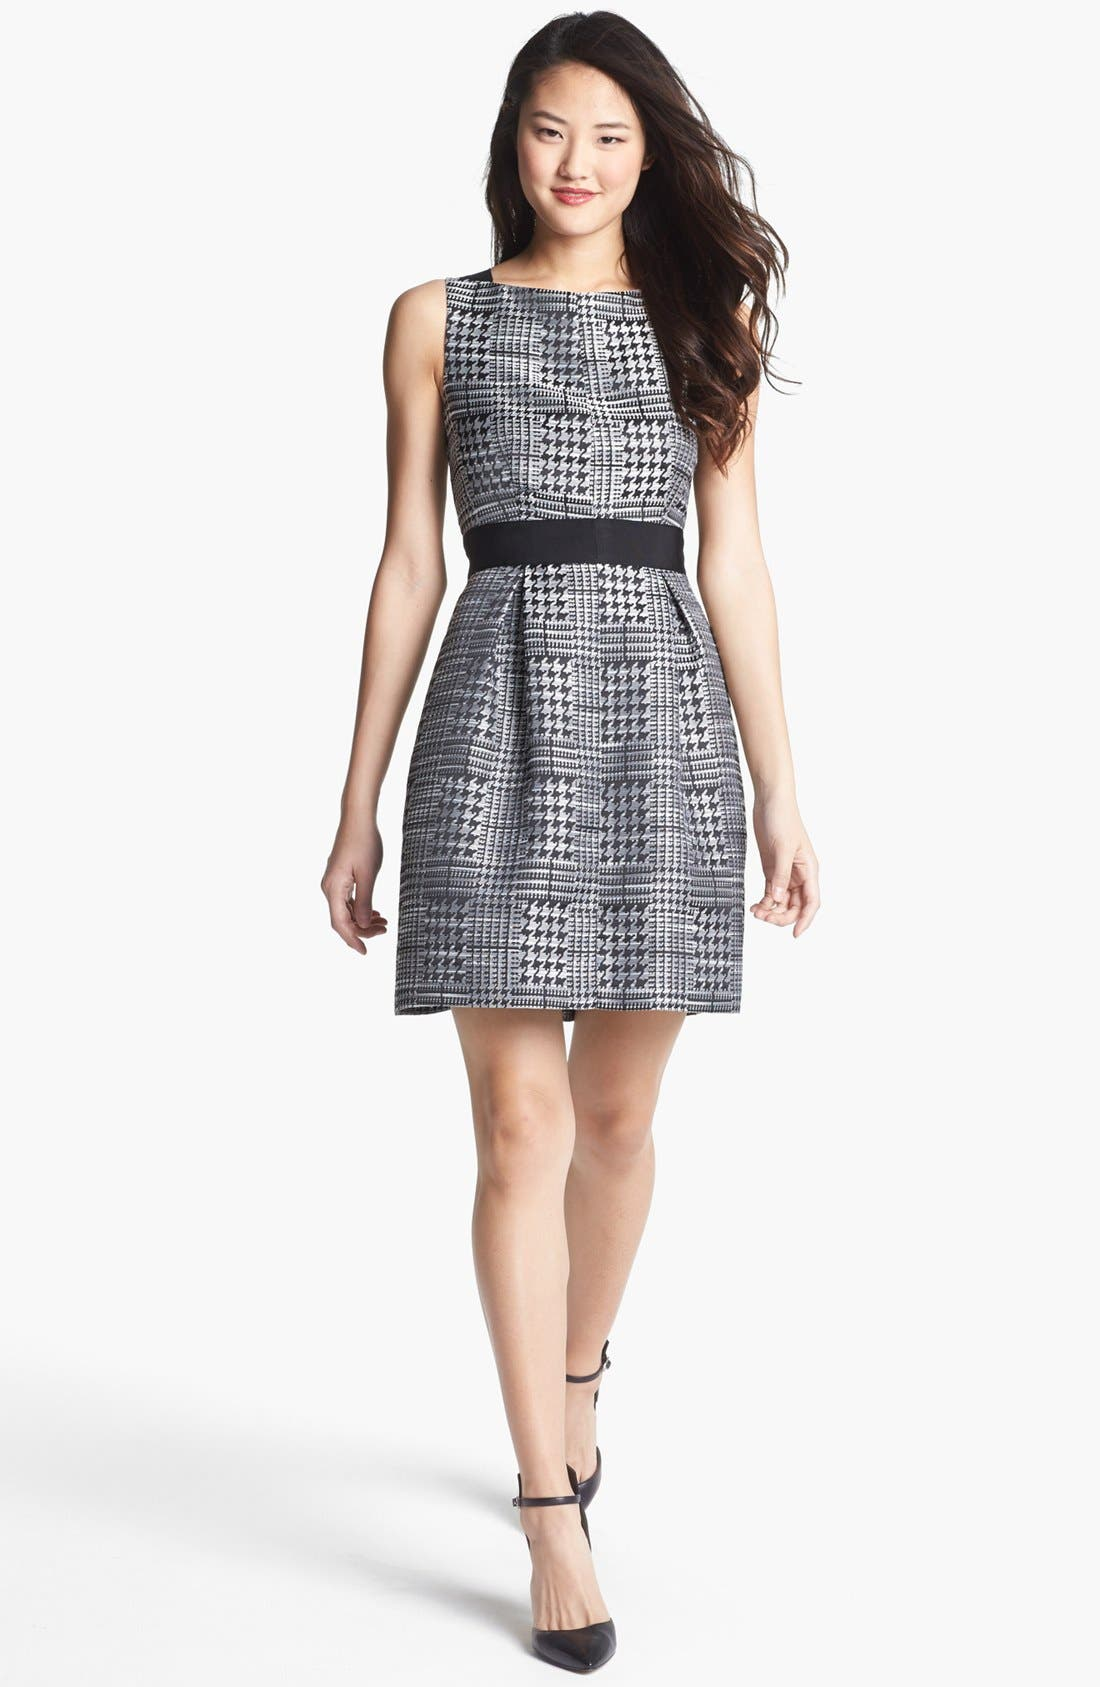 Alternate Image 1 Selected - Jessica Simpson Print Jacquard Fit & Flare Dress (Online Only)